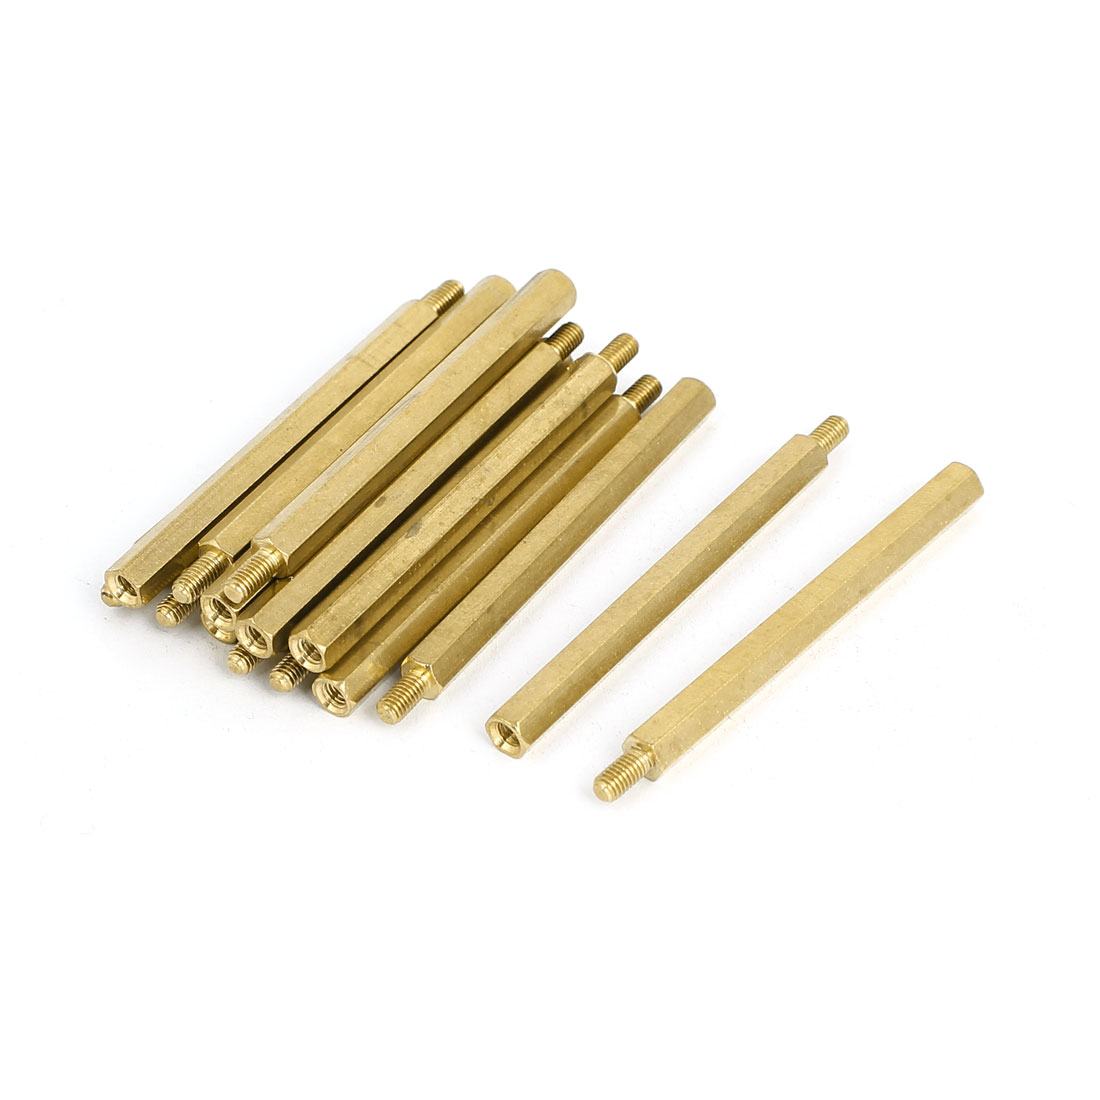 M3 Male/Female Thread Brass Hex Hexagonal PCB Spacer Standoff Support 50mm+6mm 15pcs